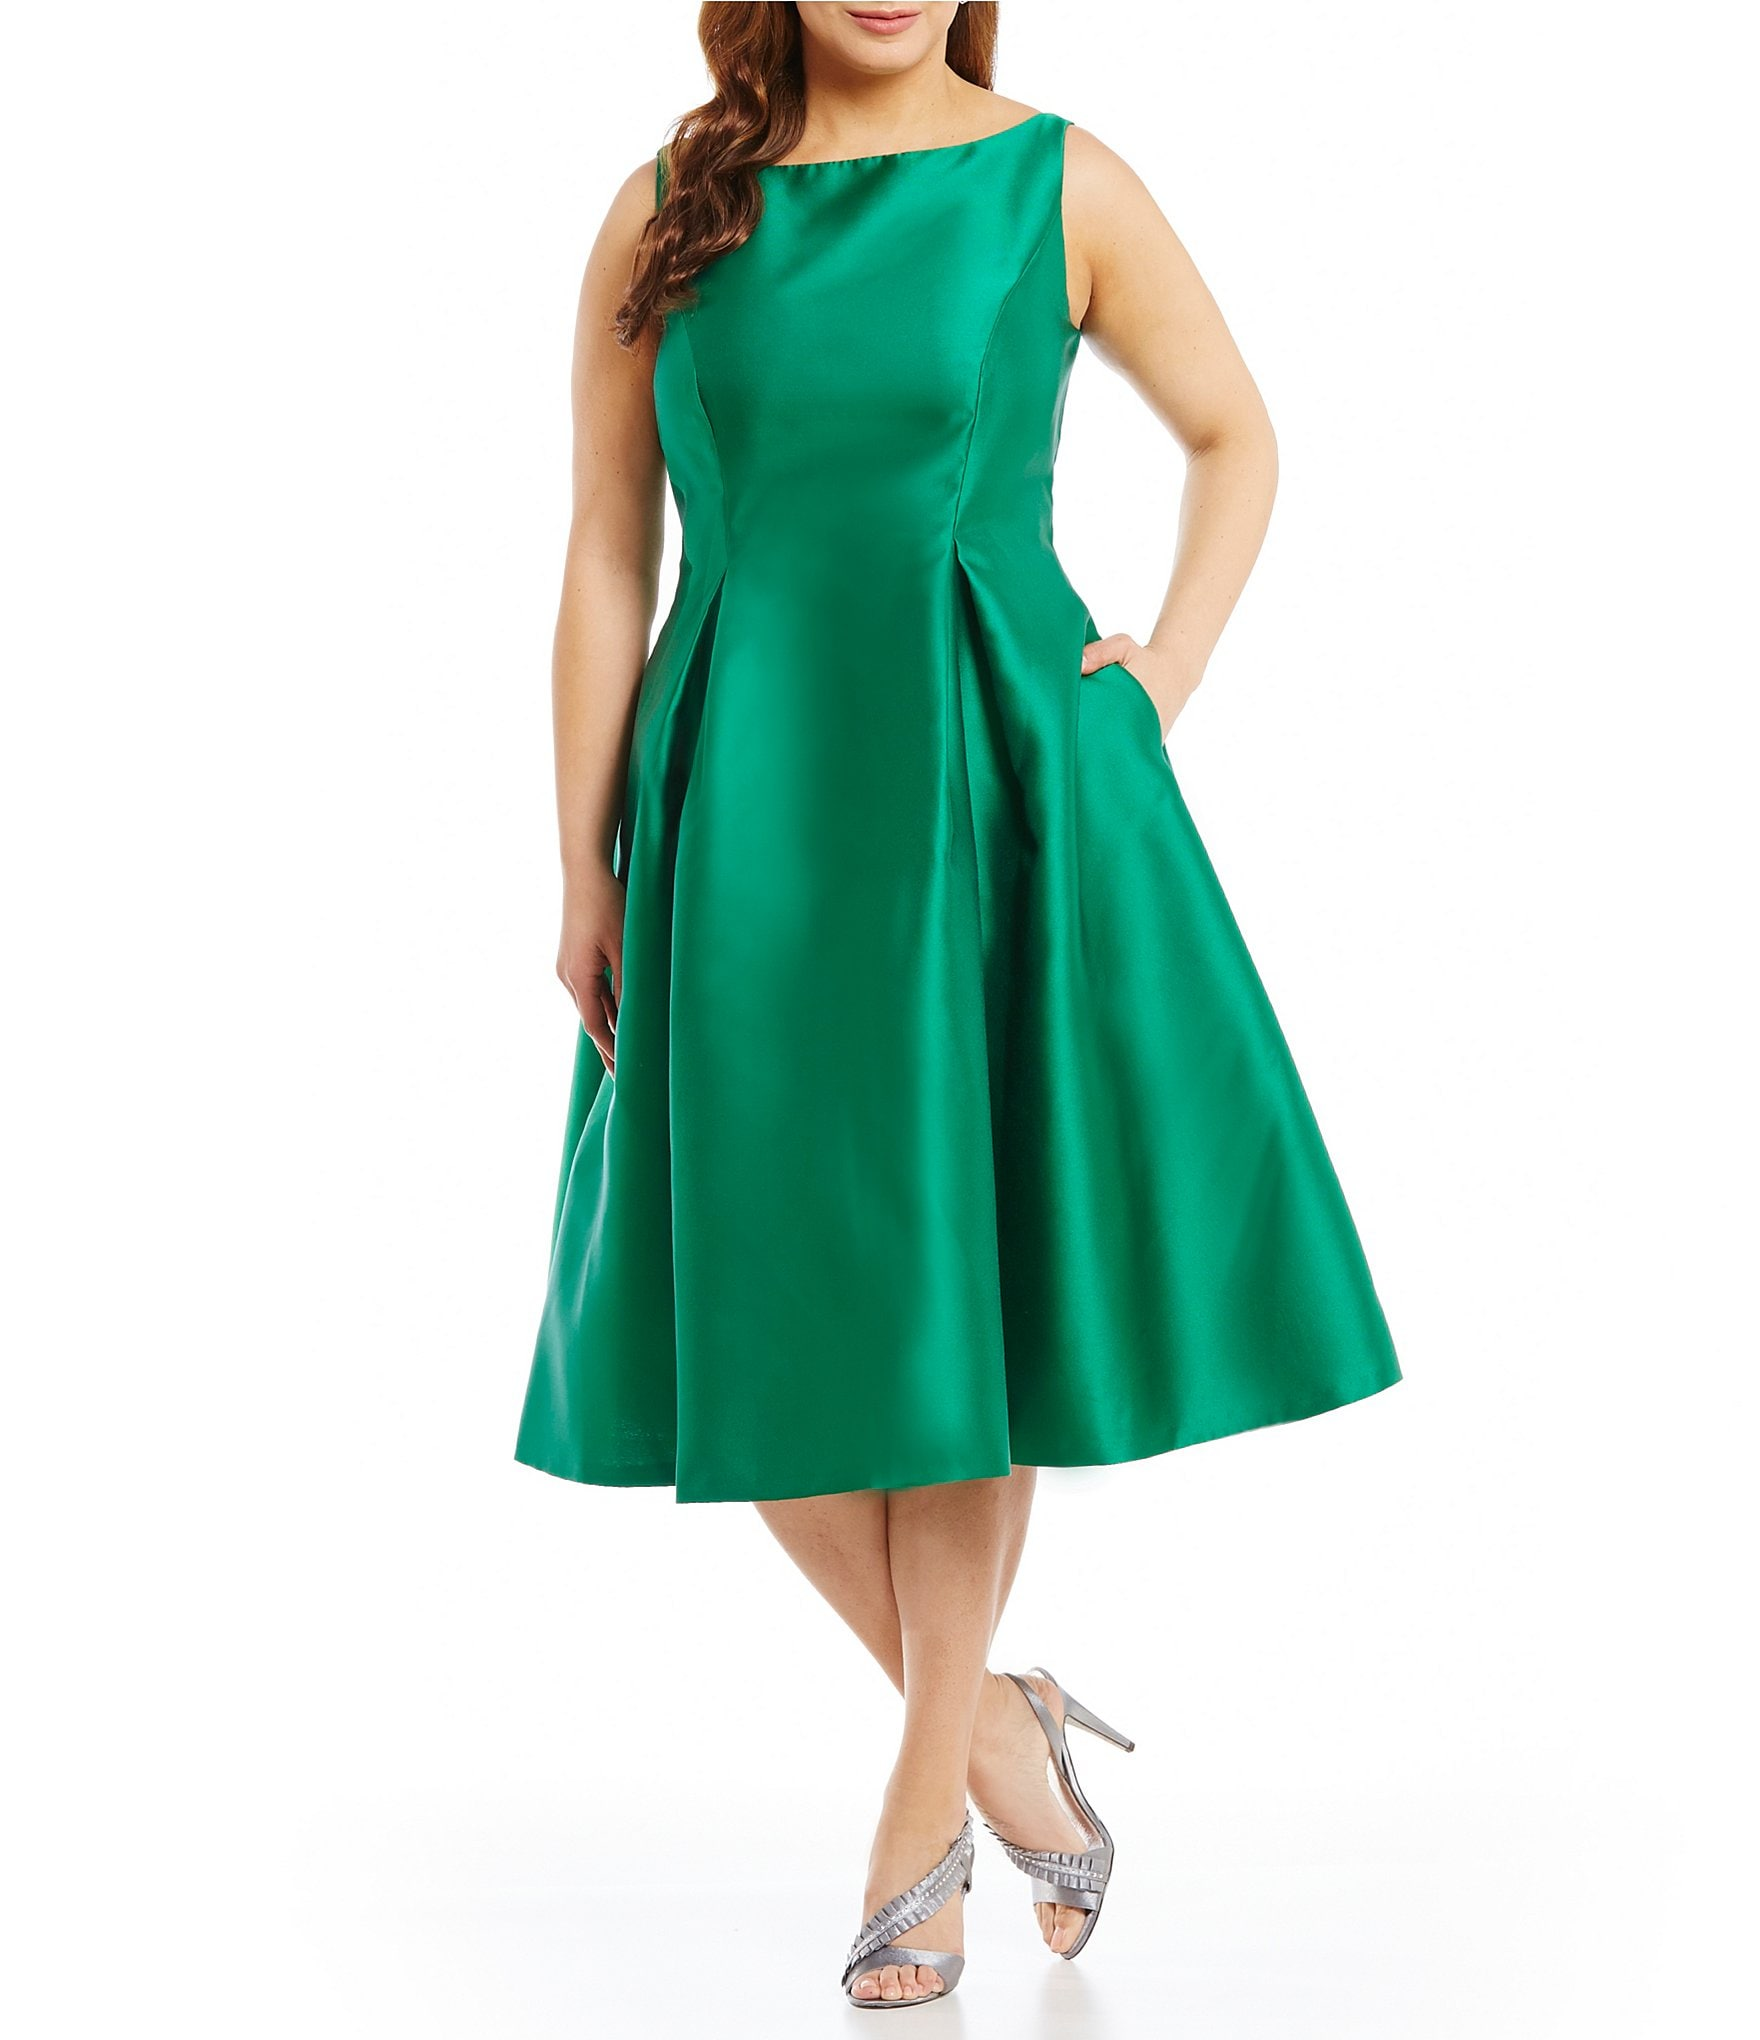 emerald cocktail dresses  eBay